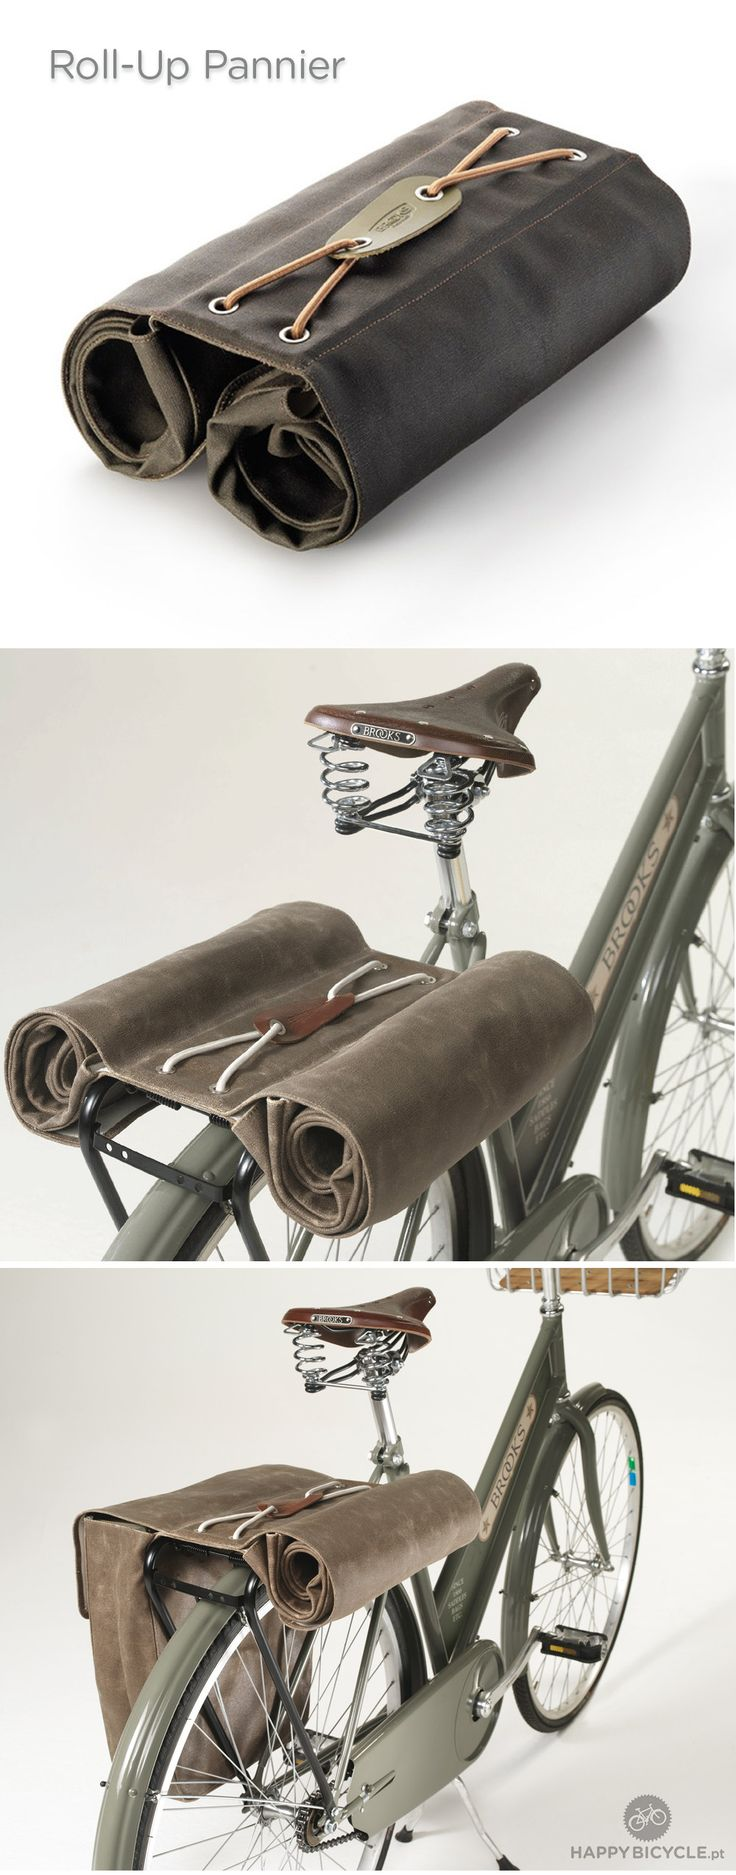 BRICK LANE ROLL-UP PANNIERS Brooks https://uk.pinterest.com/uksportoutdoors/road-bikes/pins/